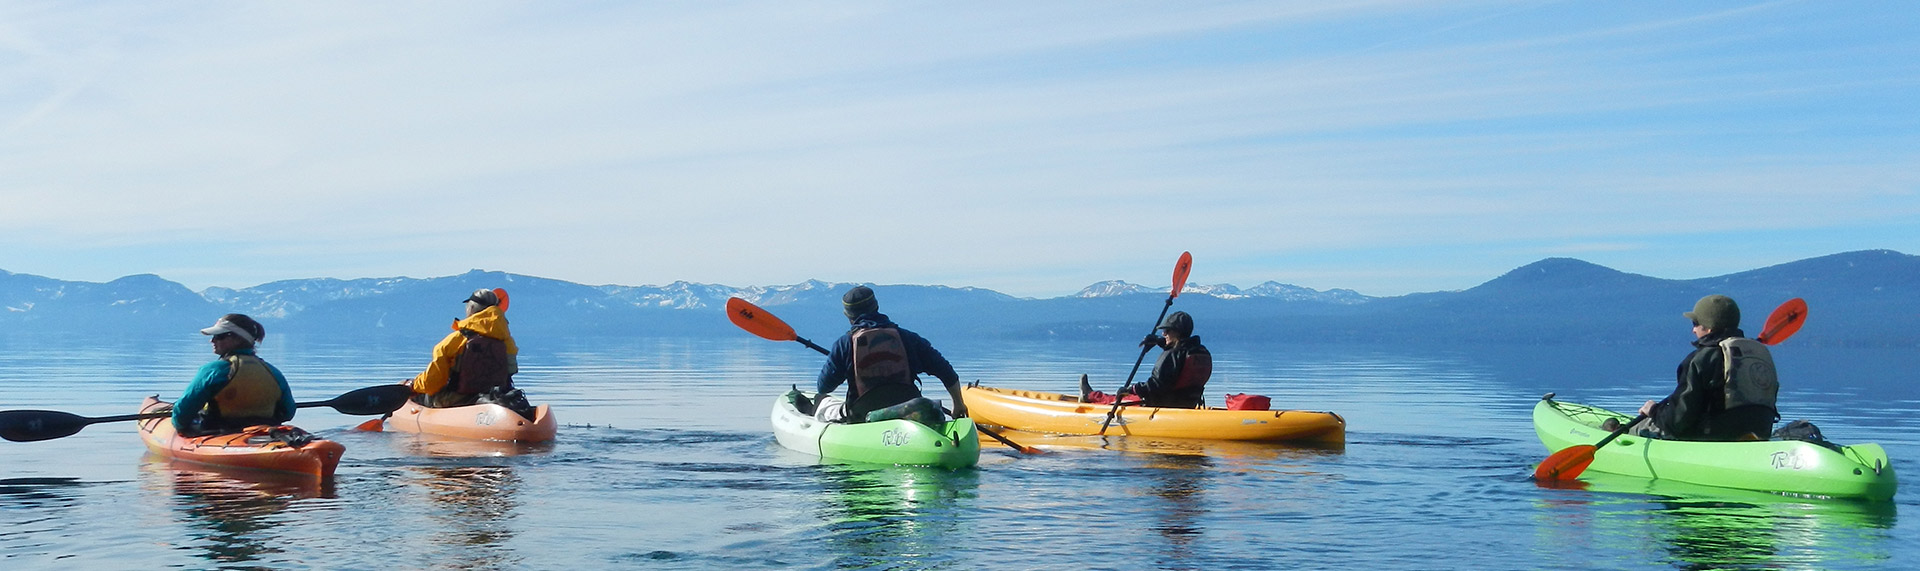 Sand Harbor State Park Kayak & SUP Rentals, Lessons & Tours